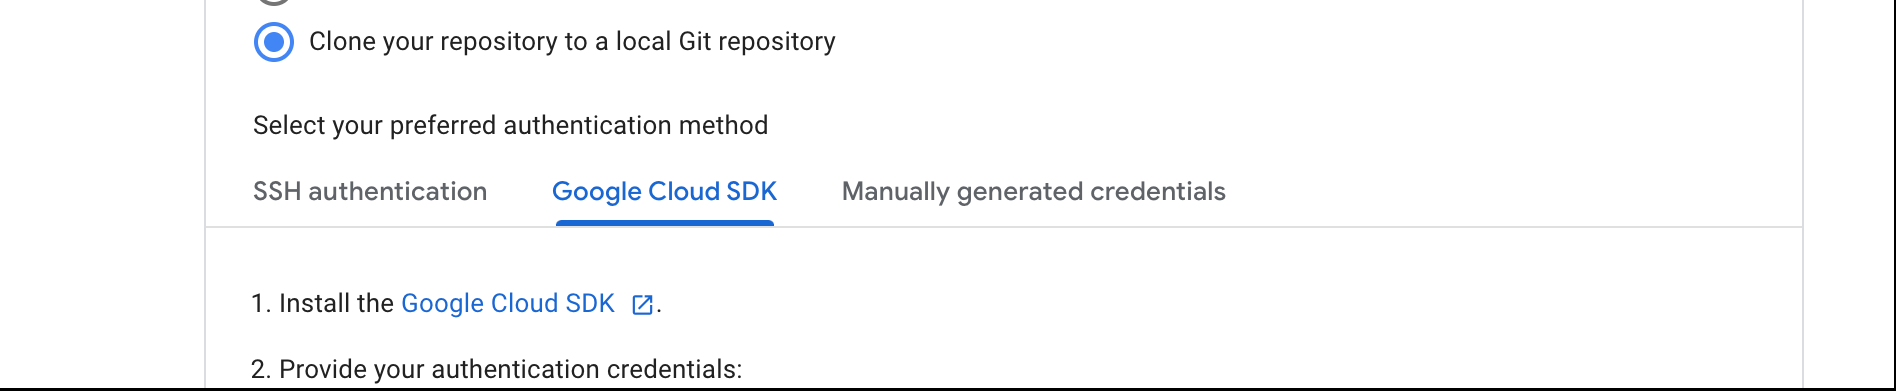 follow instructions to clone youre repository to a local Git repository